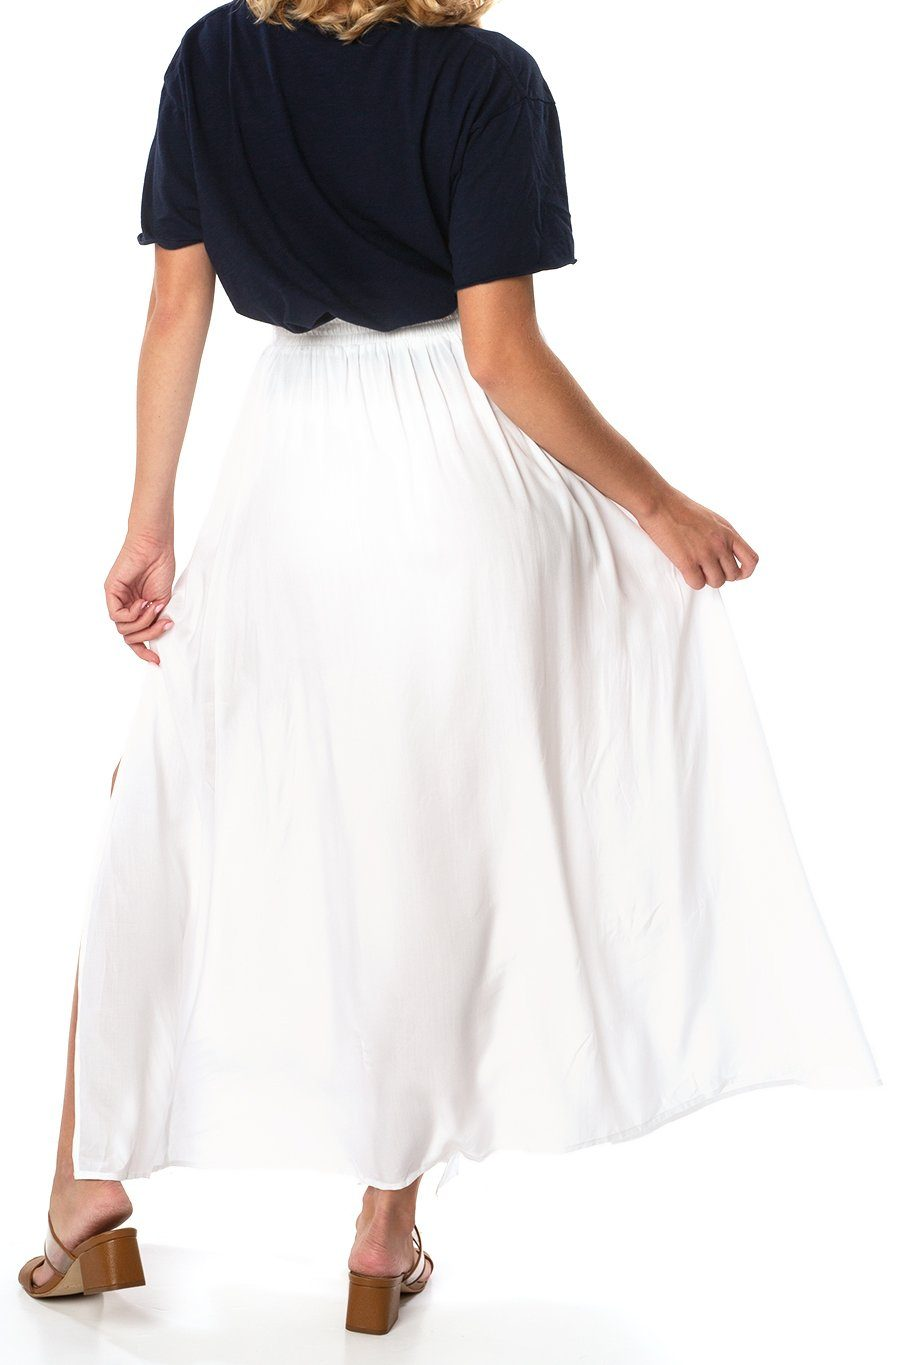 Amalfi Double Slit Skirt - White